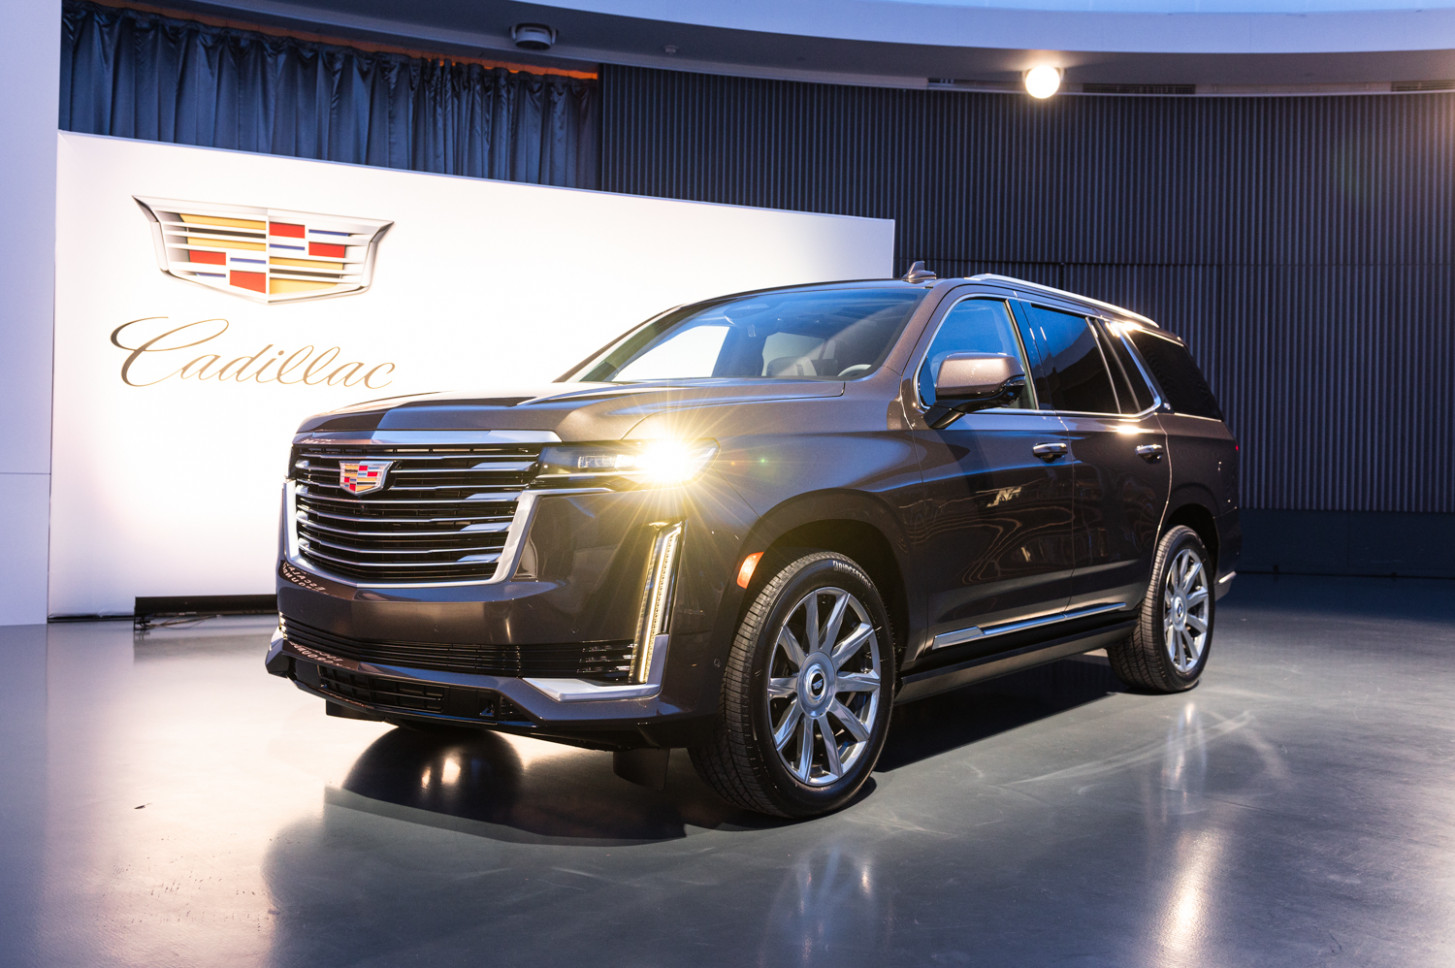 Spy Shoot Pictures Of The 2022 Cadillac Escalade